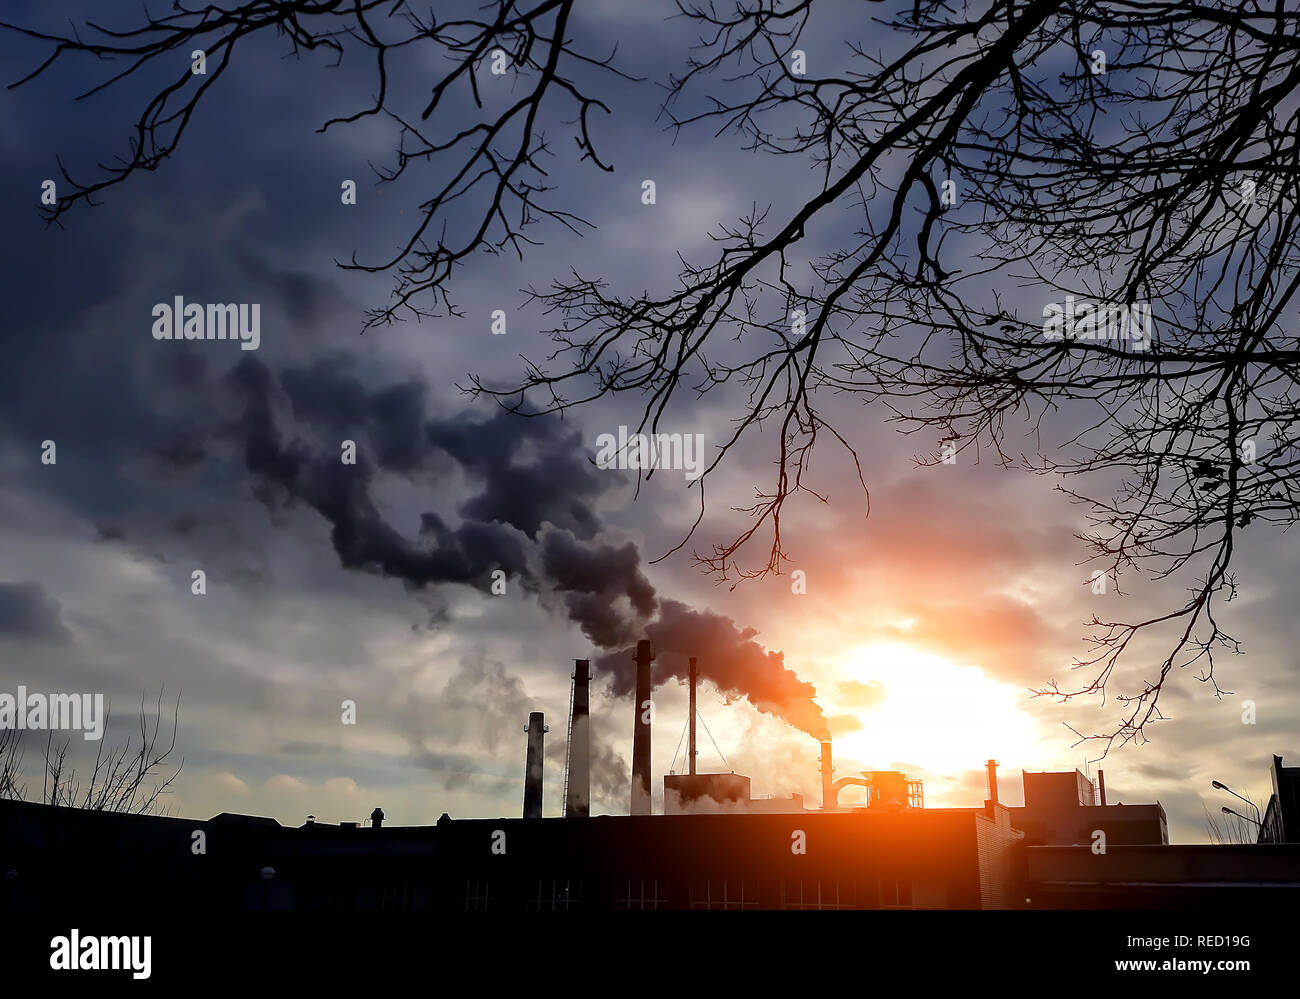 Factory chimneys with black smoke. Factory smokestacks. Air pollution. Environment pollution concept. Ecological disaster concept. - Stock Image